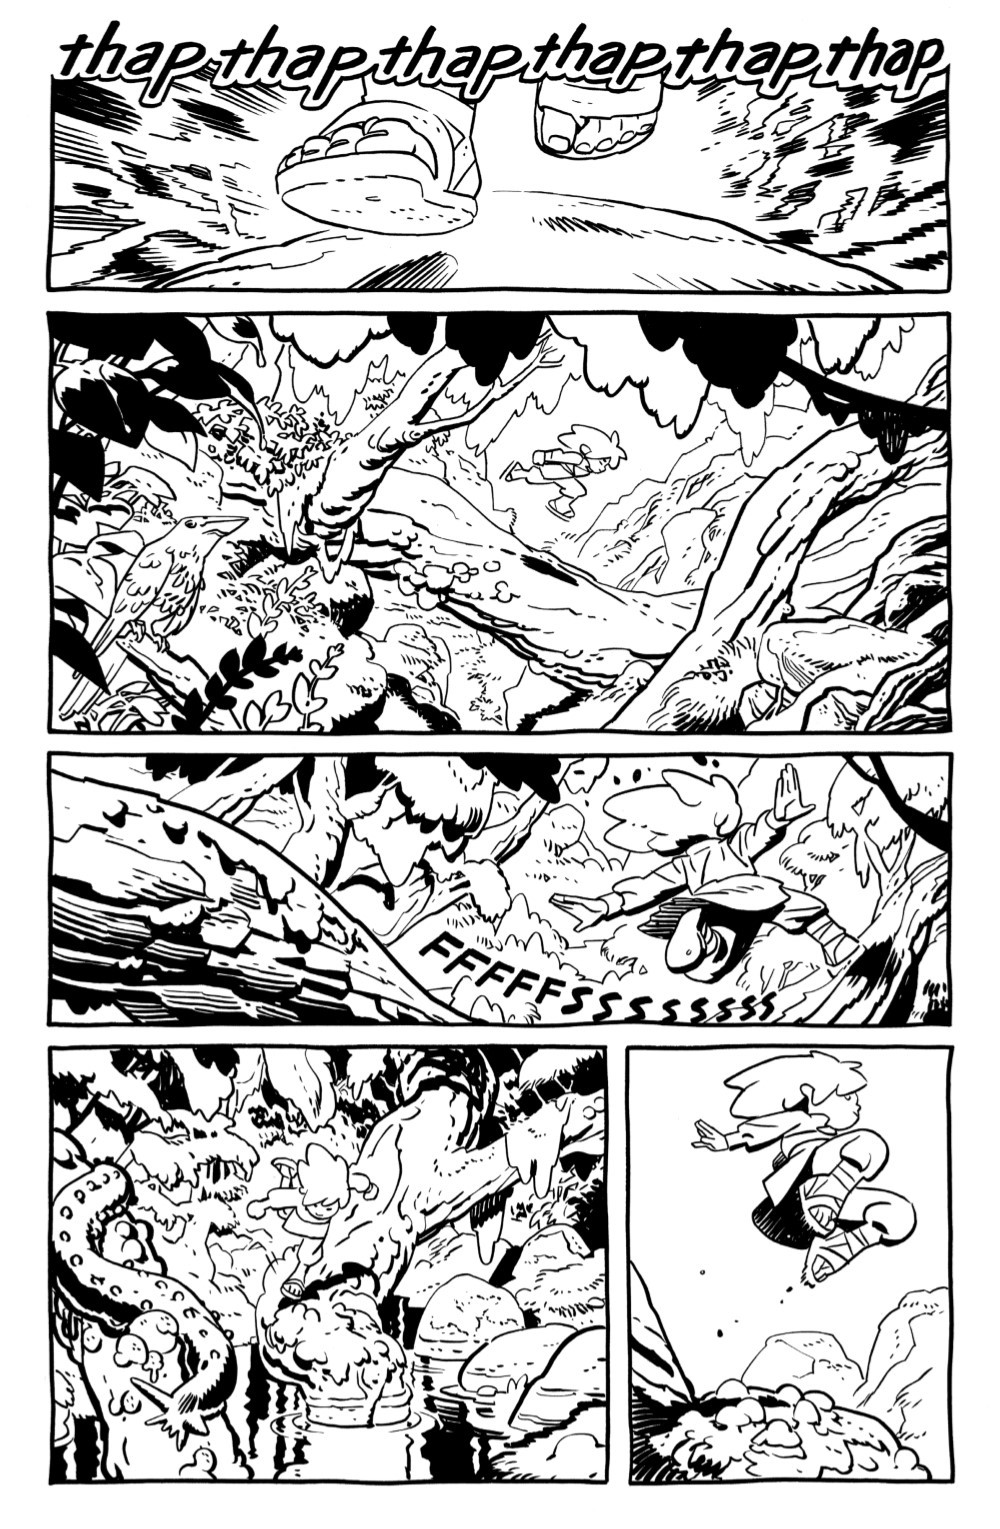 JONNA-1-DB-PGS-01-32-FNL-1-05 ComicList Previews: JONNA AND THE UNPOSSIBLE MONSTERS #1 (DRAWING BOARD EDITION)